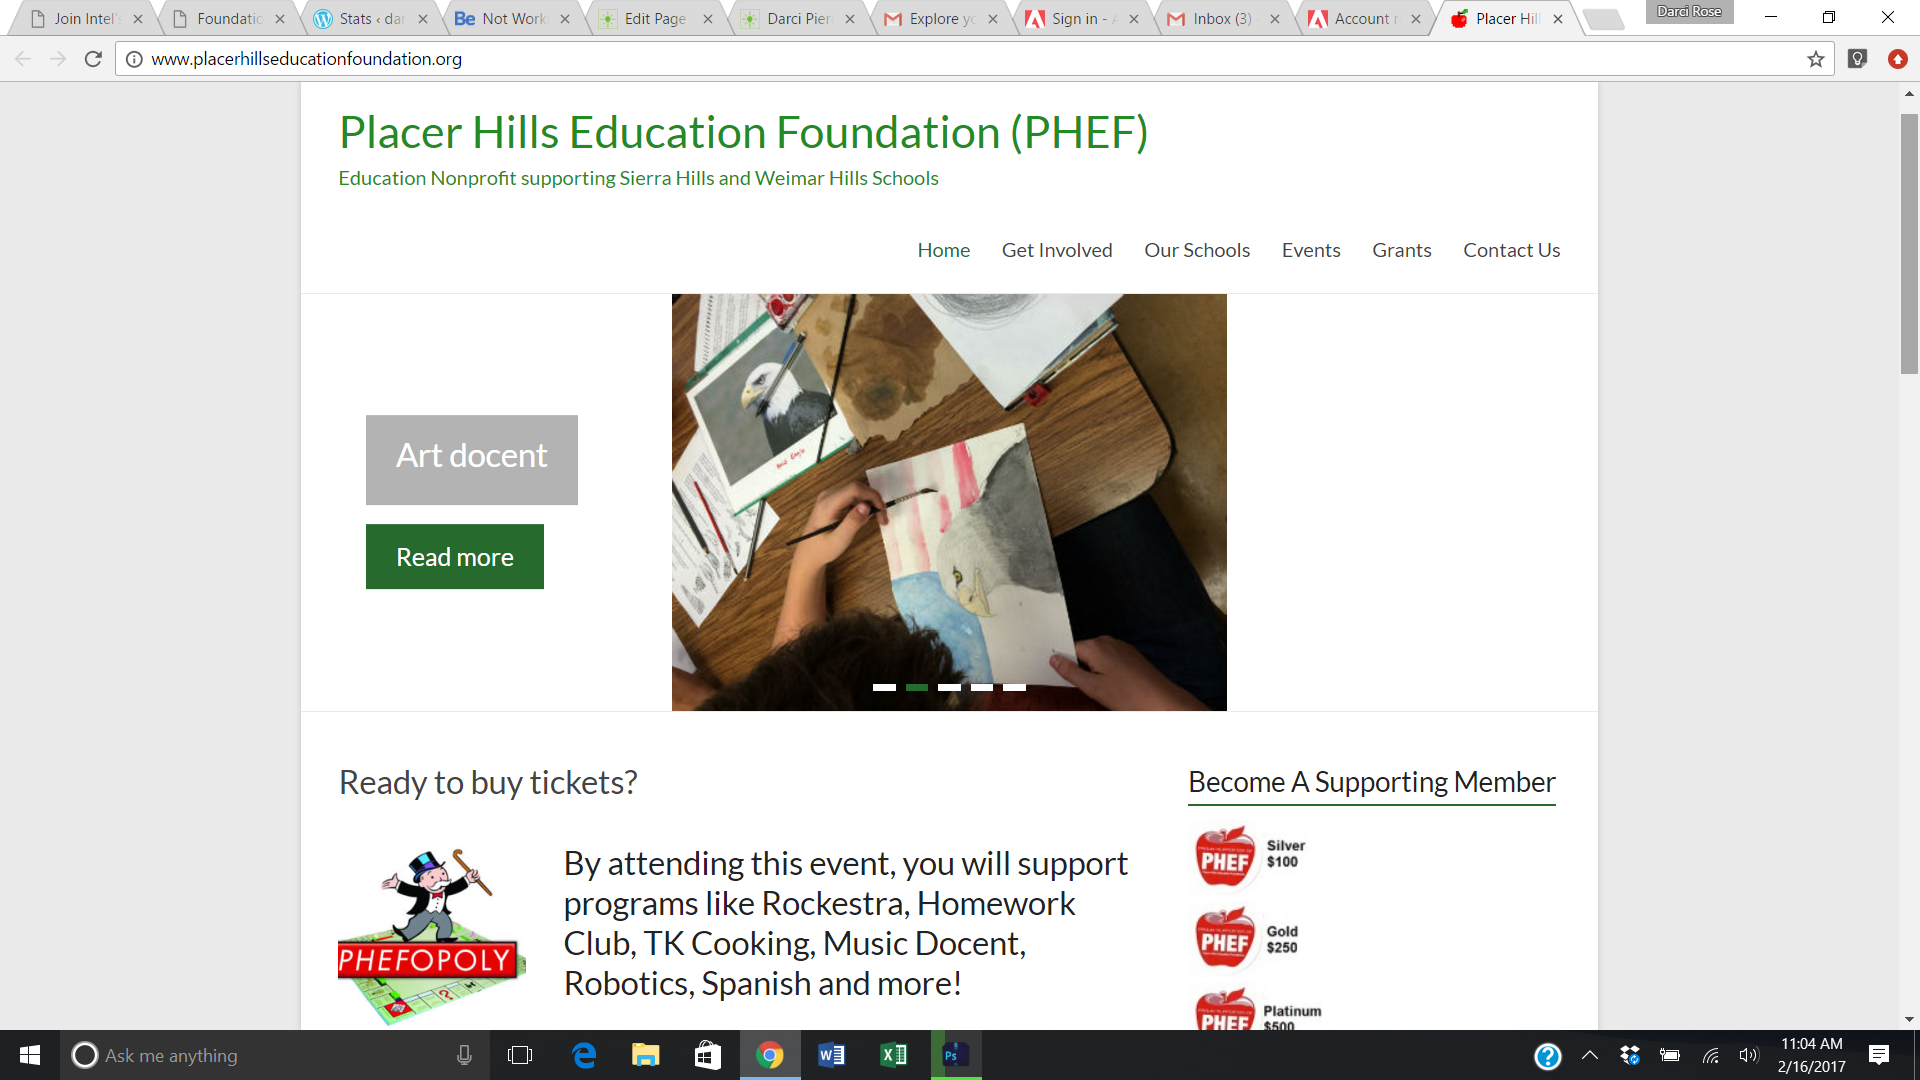 placerhillseducationfoundation.org (PHEF) project